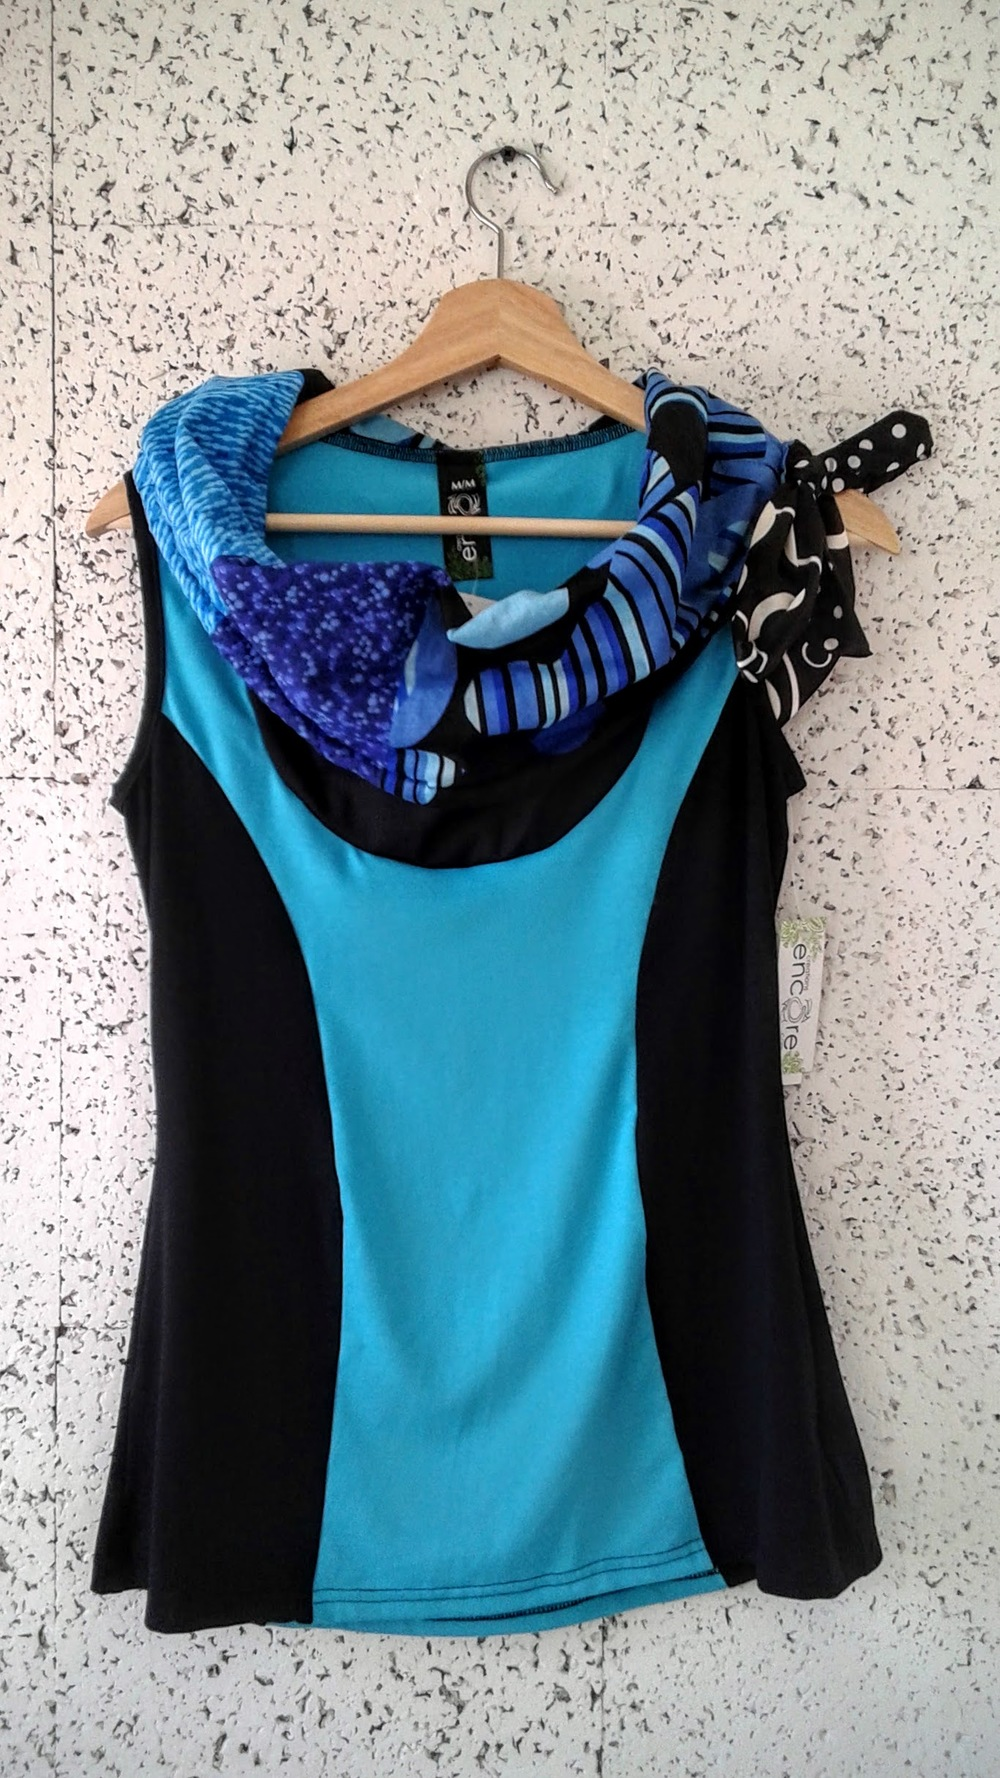 Creations Encore top (NWT); Size M, $34